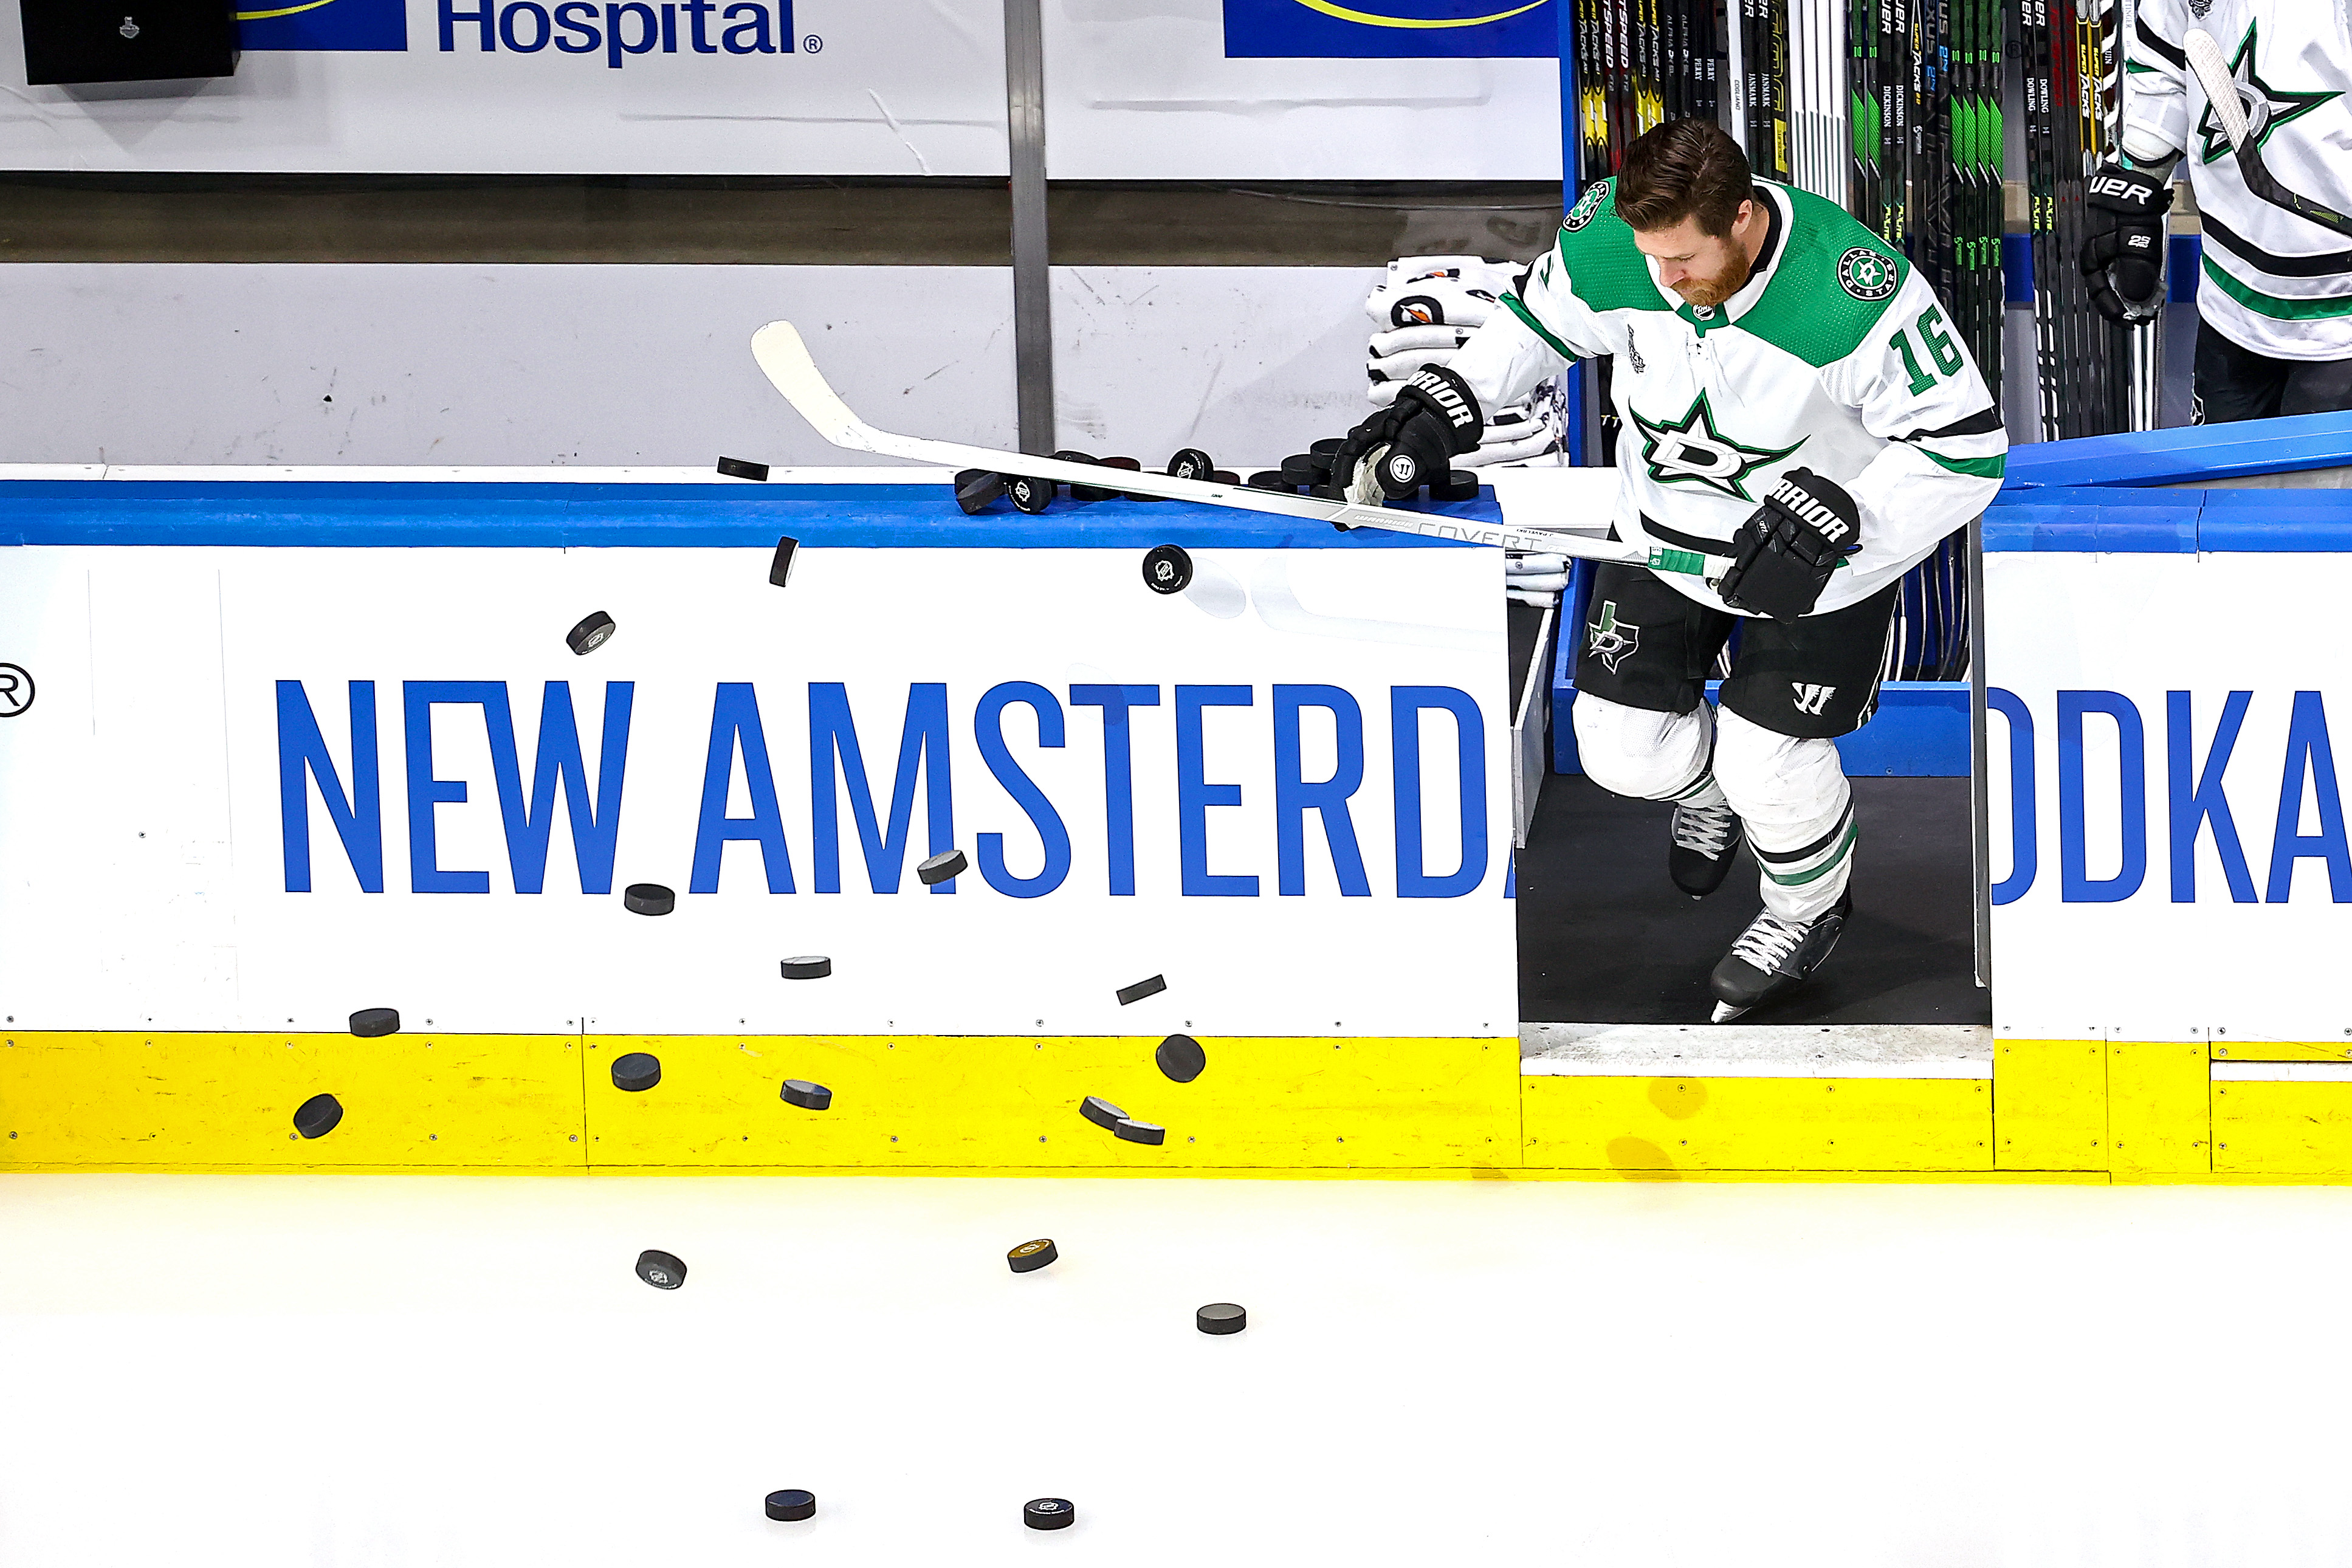 EDMONTON, ALBERTA - SEPTEMBER 26: Joe Pavelski #16 of the Dallas Stars knocks the pucks off of the boards for warm-ups prior to Game Five of the 2020 NHL Stanley Cup Final against the Tampa Bay Lightning at Rogers Place on September 26, 2020 in Edmonton, Alberta, Canada.